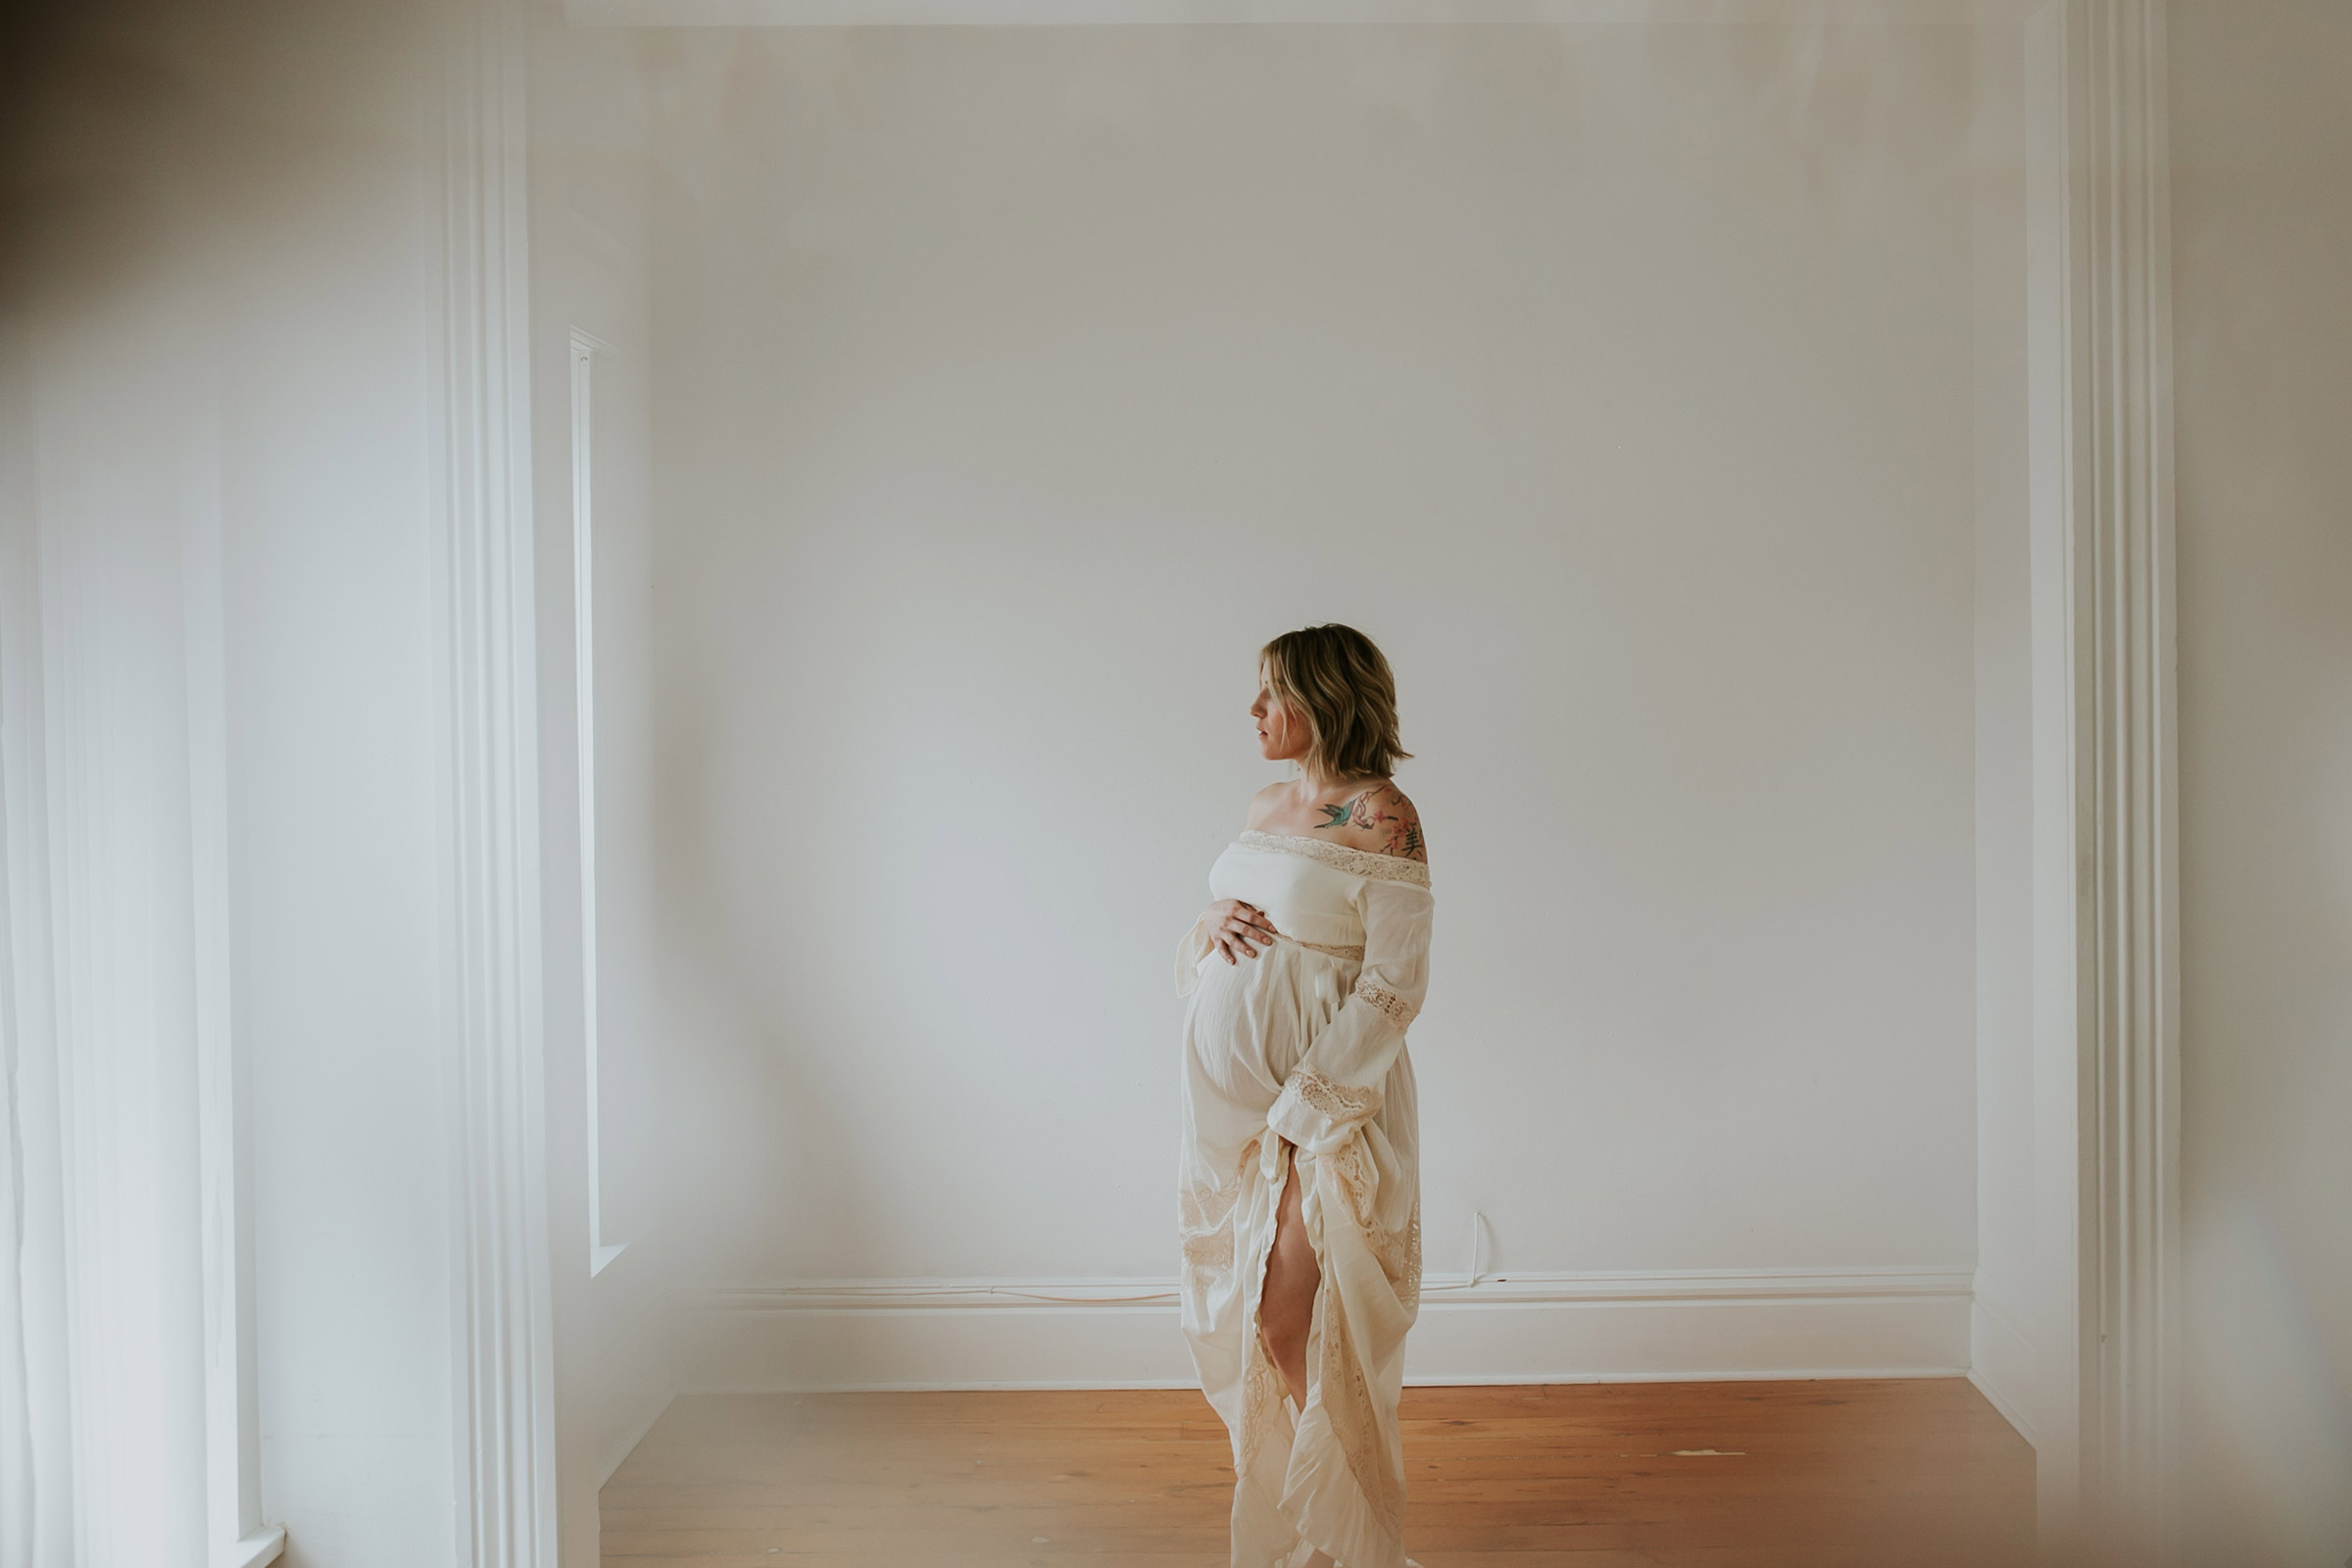 kenzi-maternity-woman-custom-maternity-gown-dame-and-maiden-iowa-raelyn-ramey-photography-88.jpg